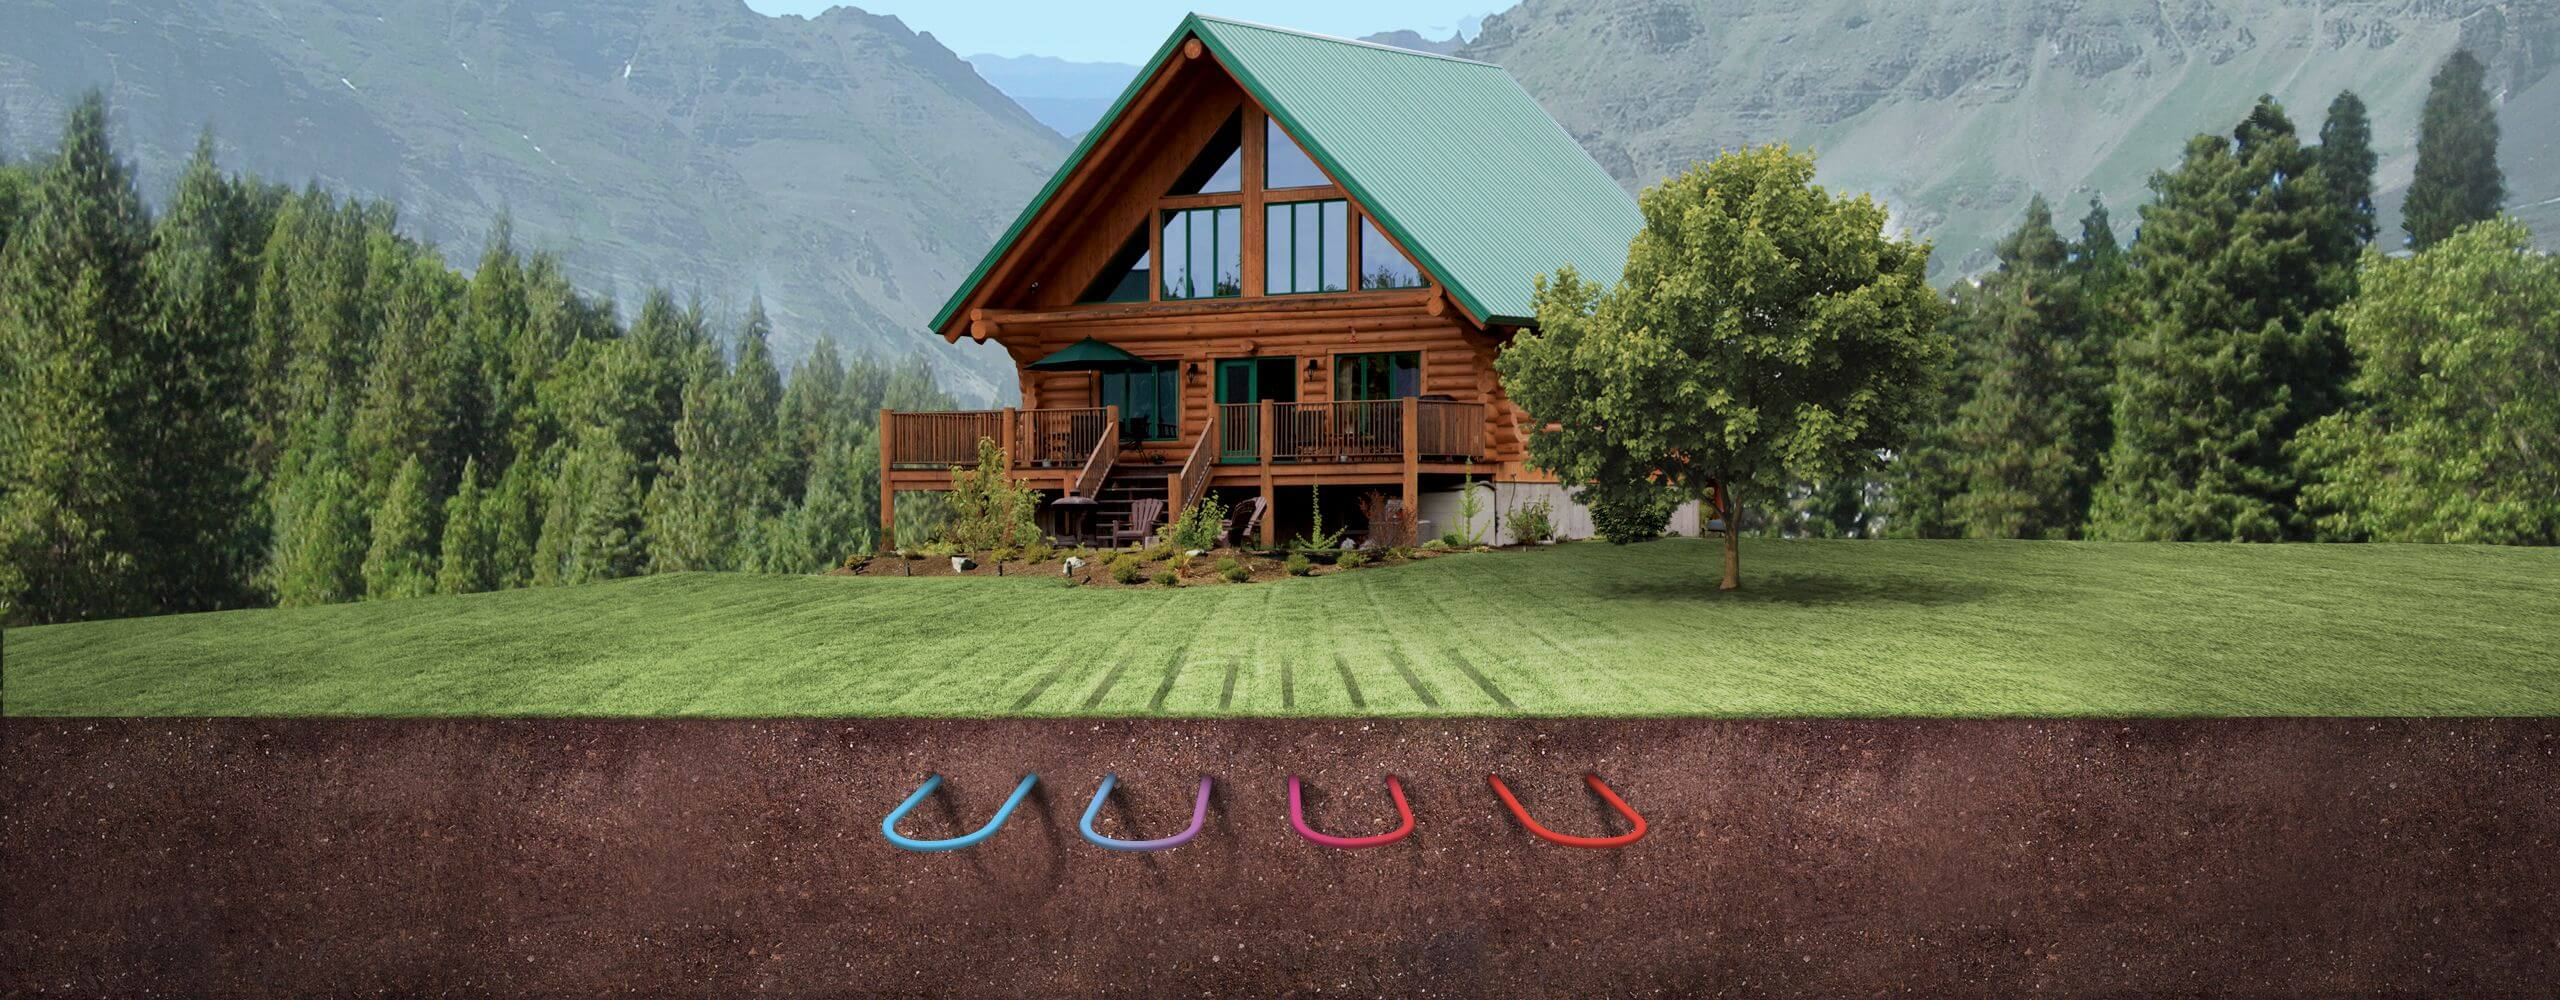 Log home with underground loop exposed showing heat exchange